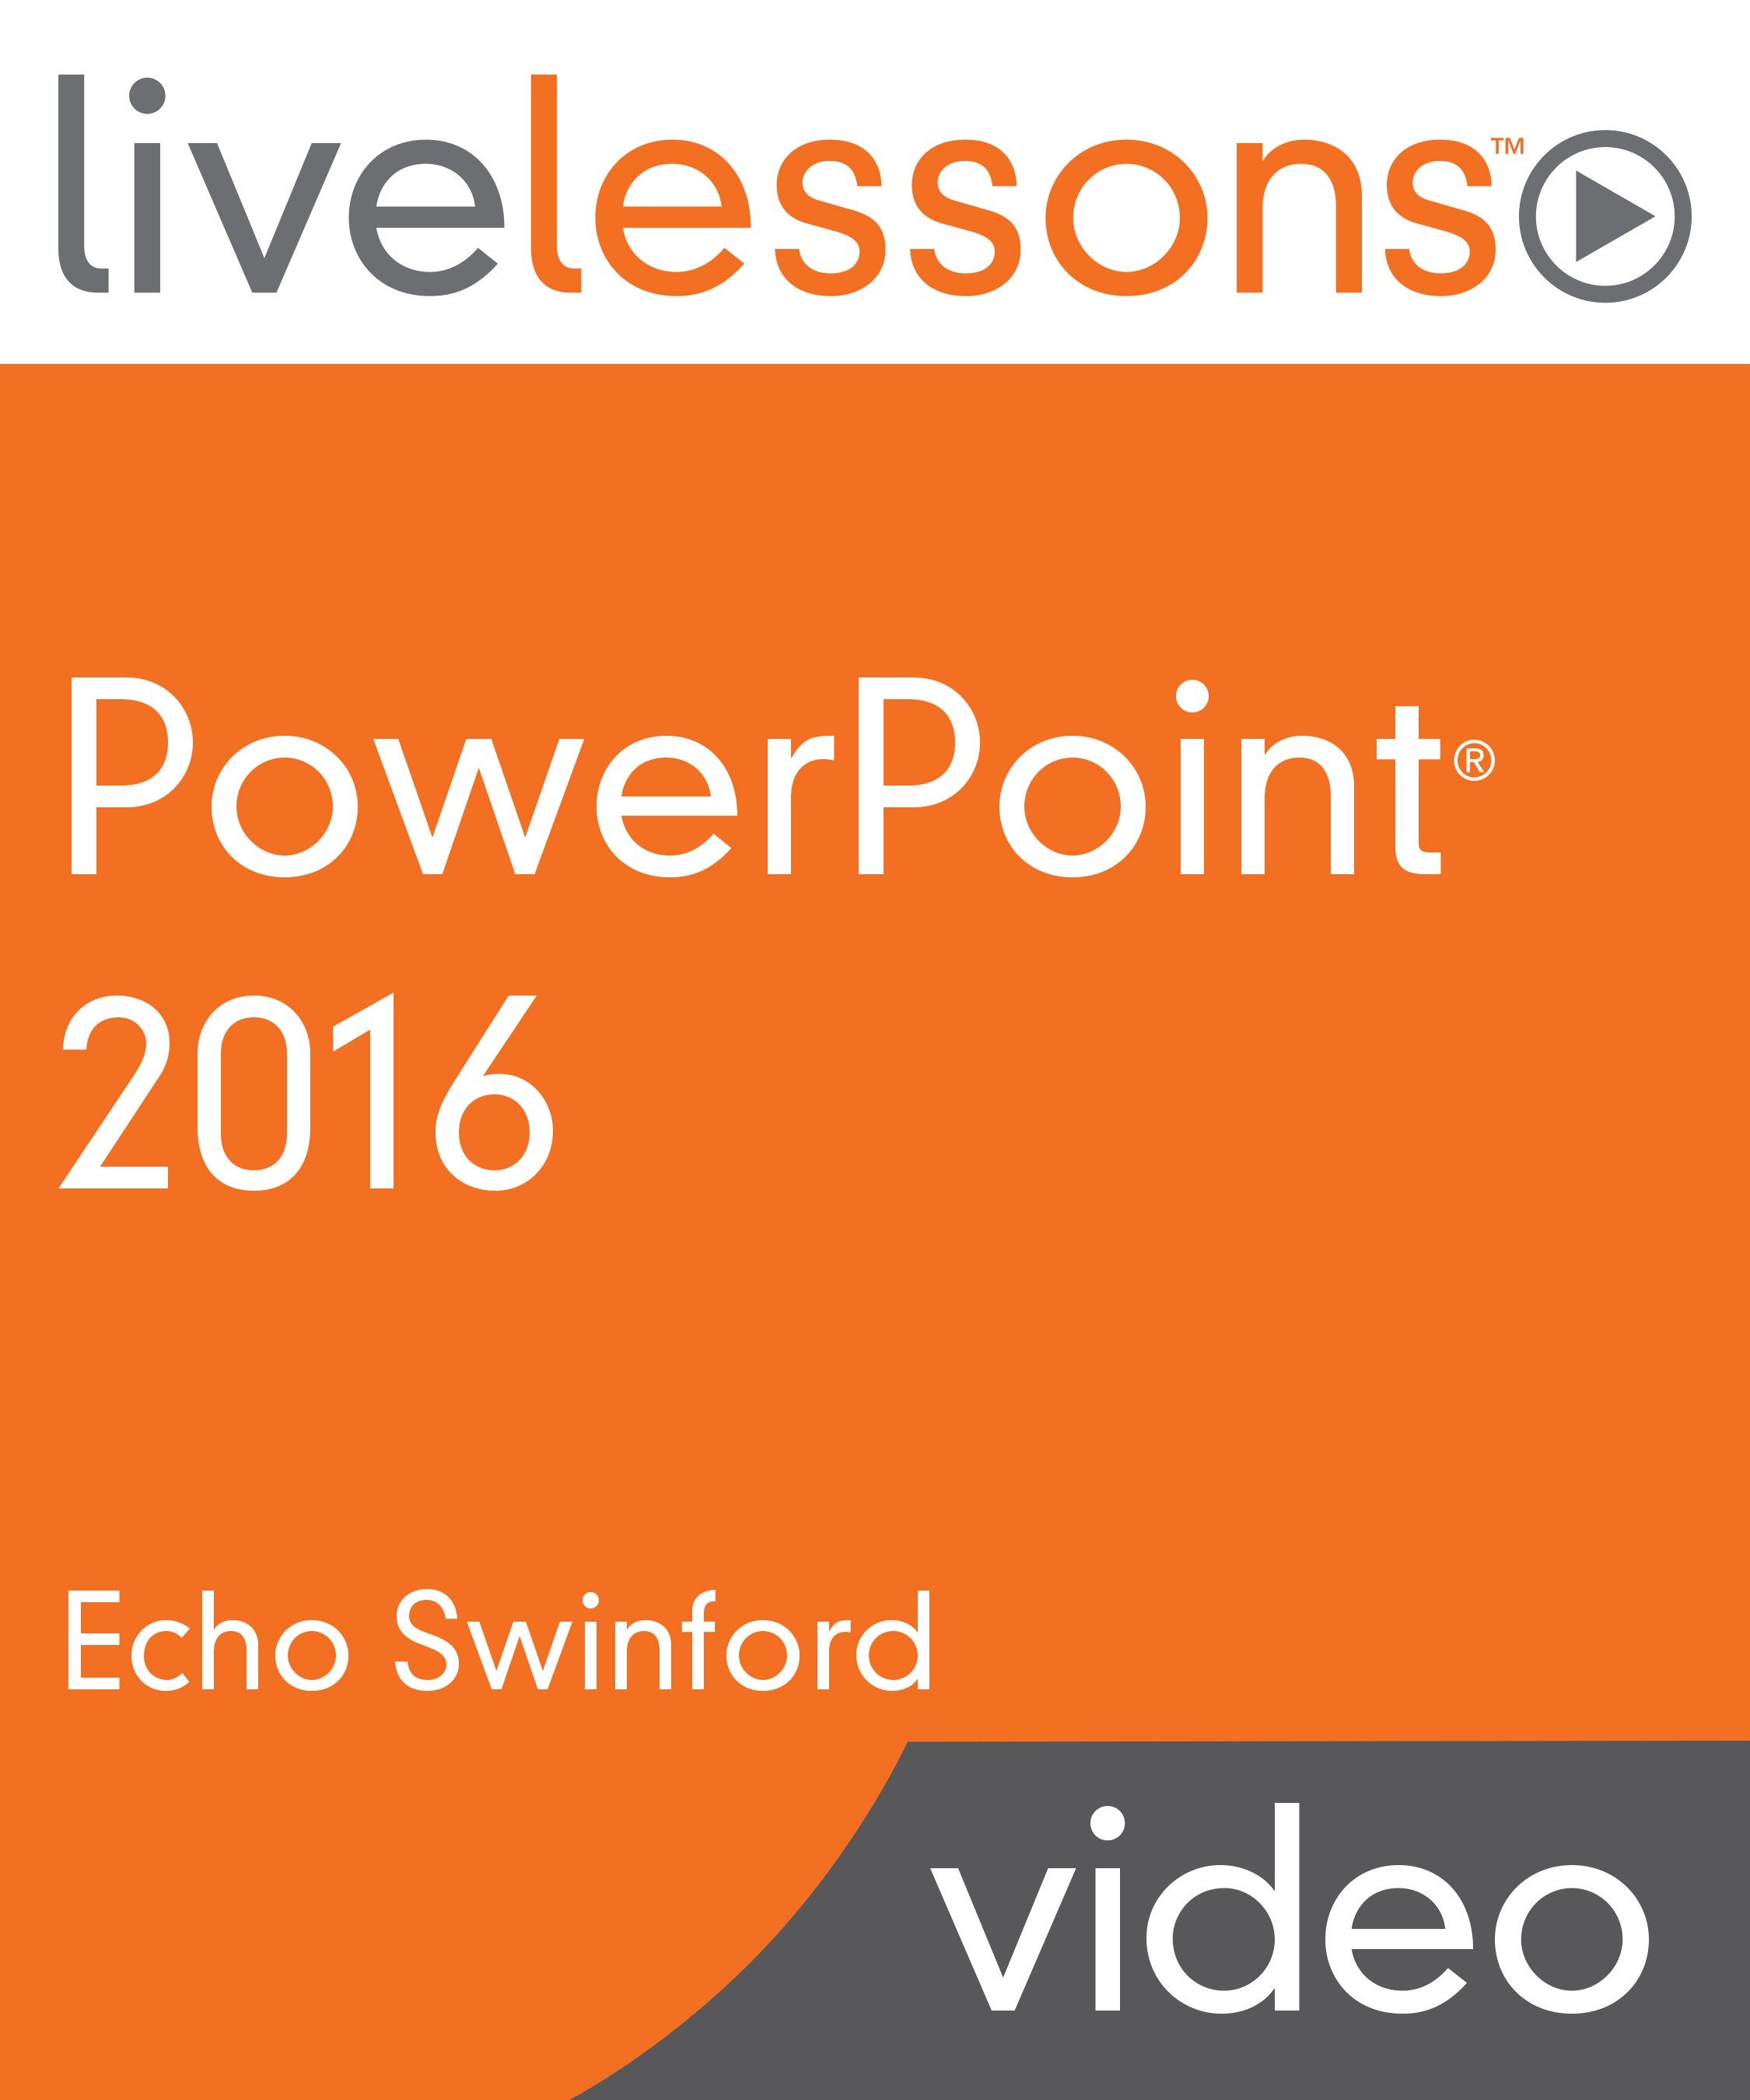 PowerPoint 2016 LiveLessons (Video Training)